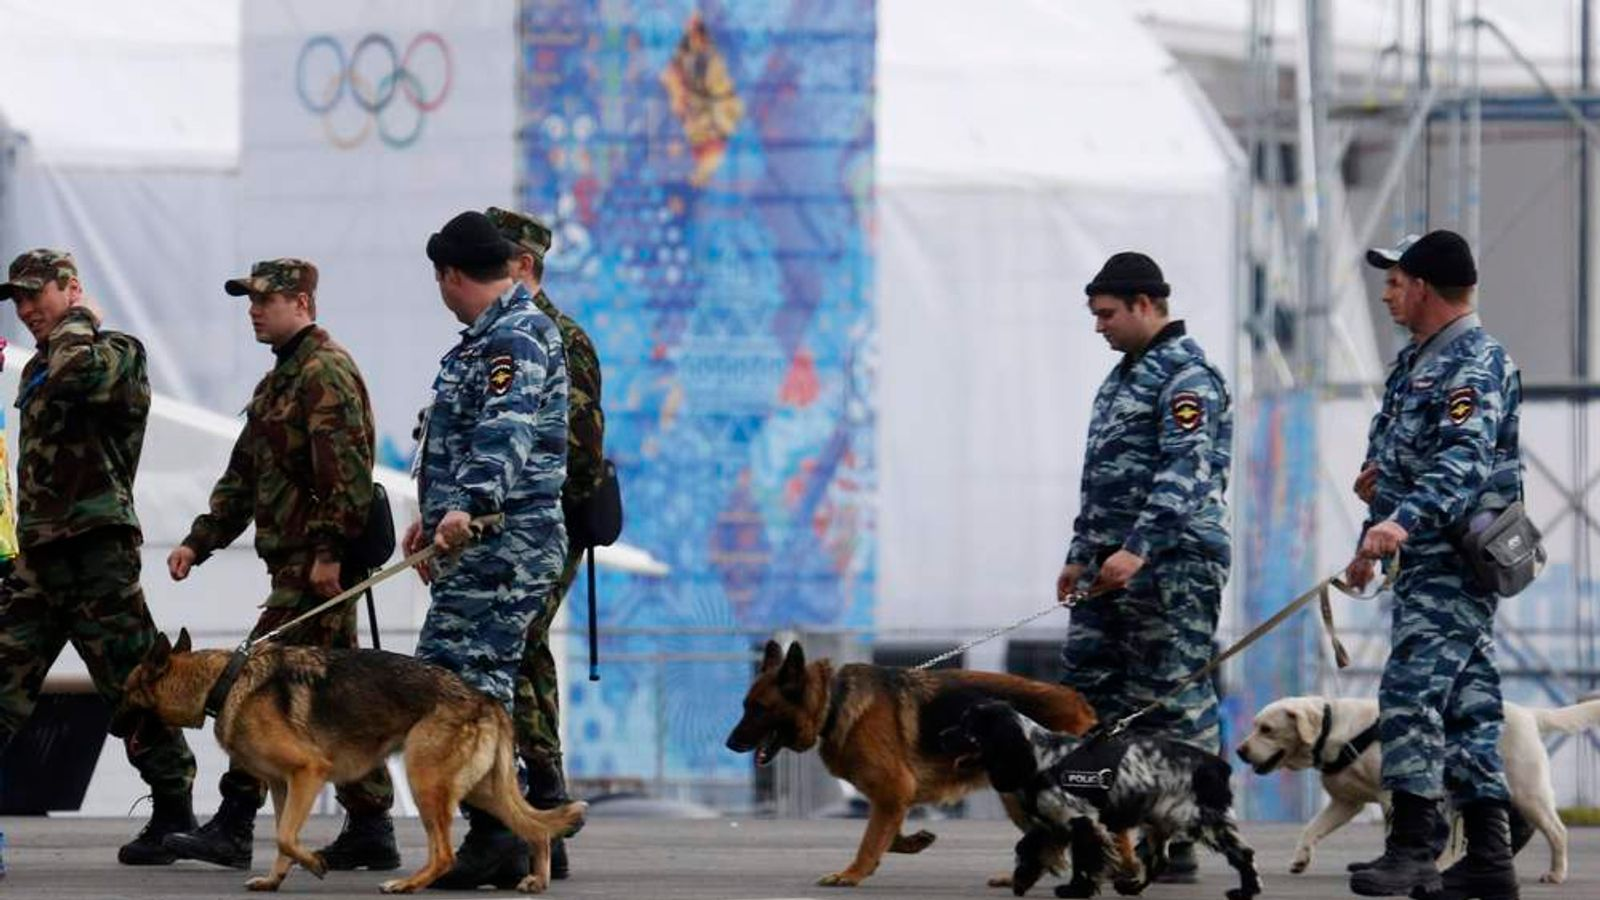 Russia Sochi Winter Olympics Security